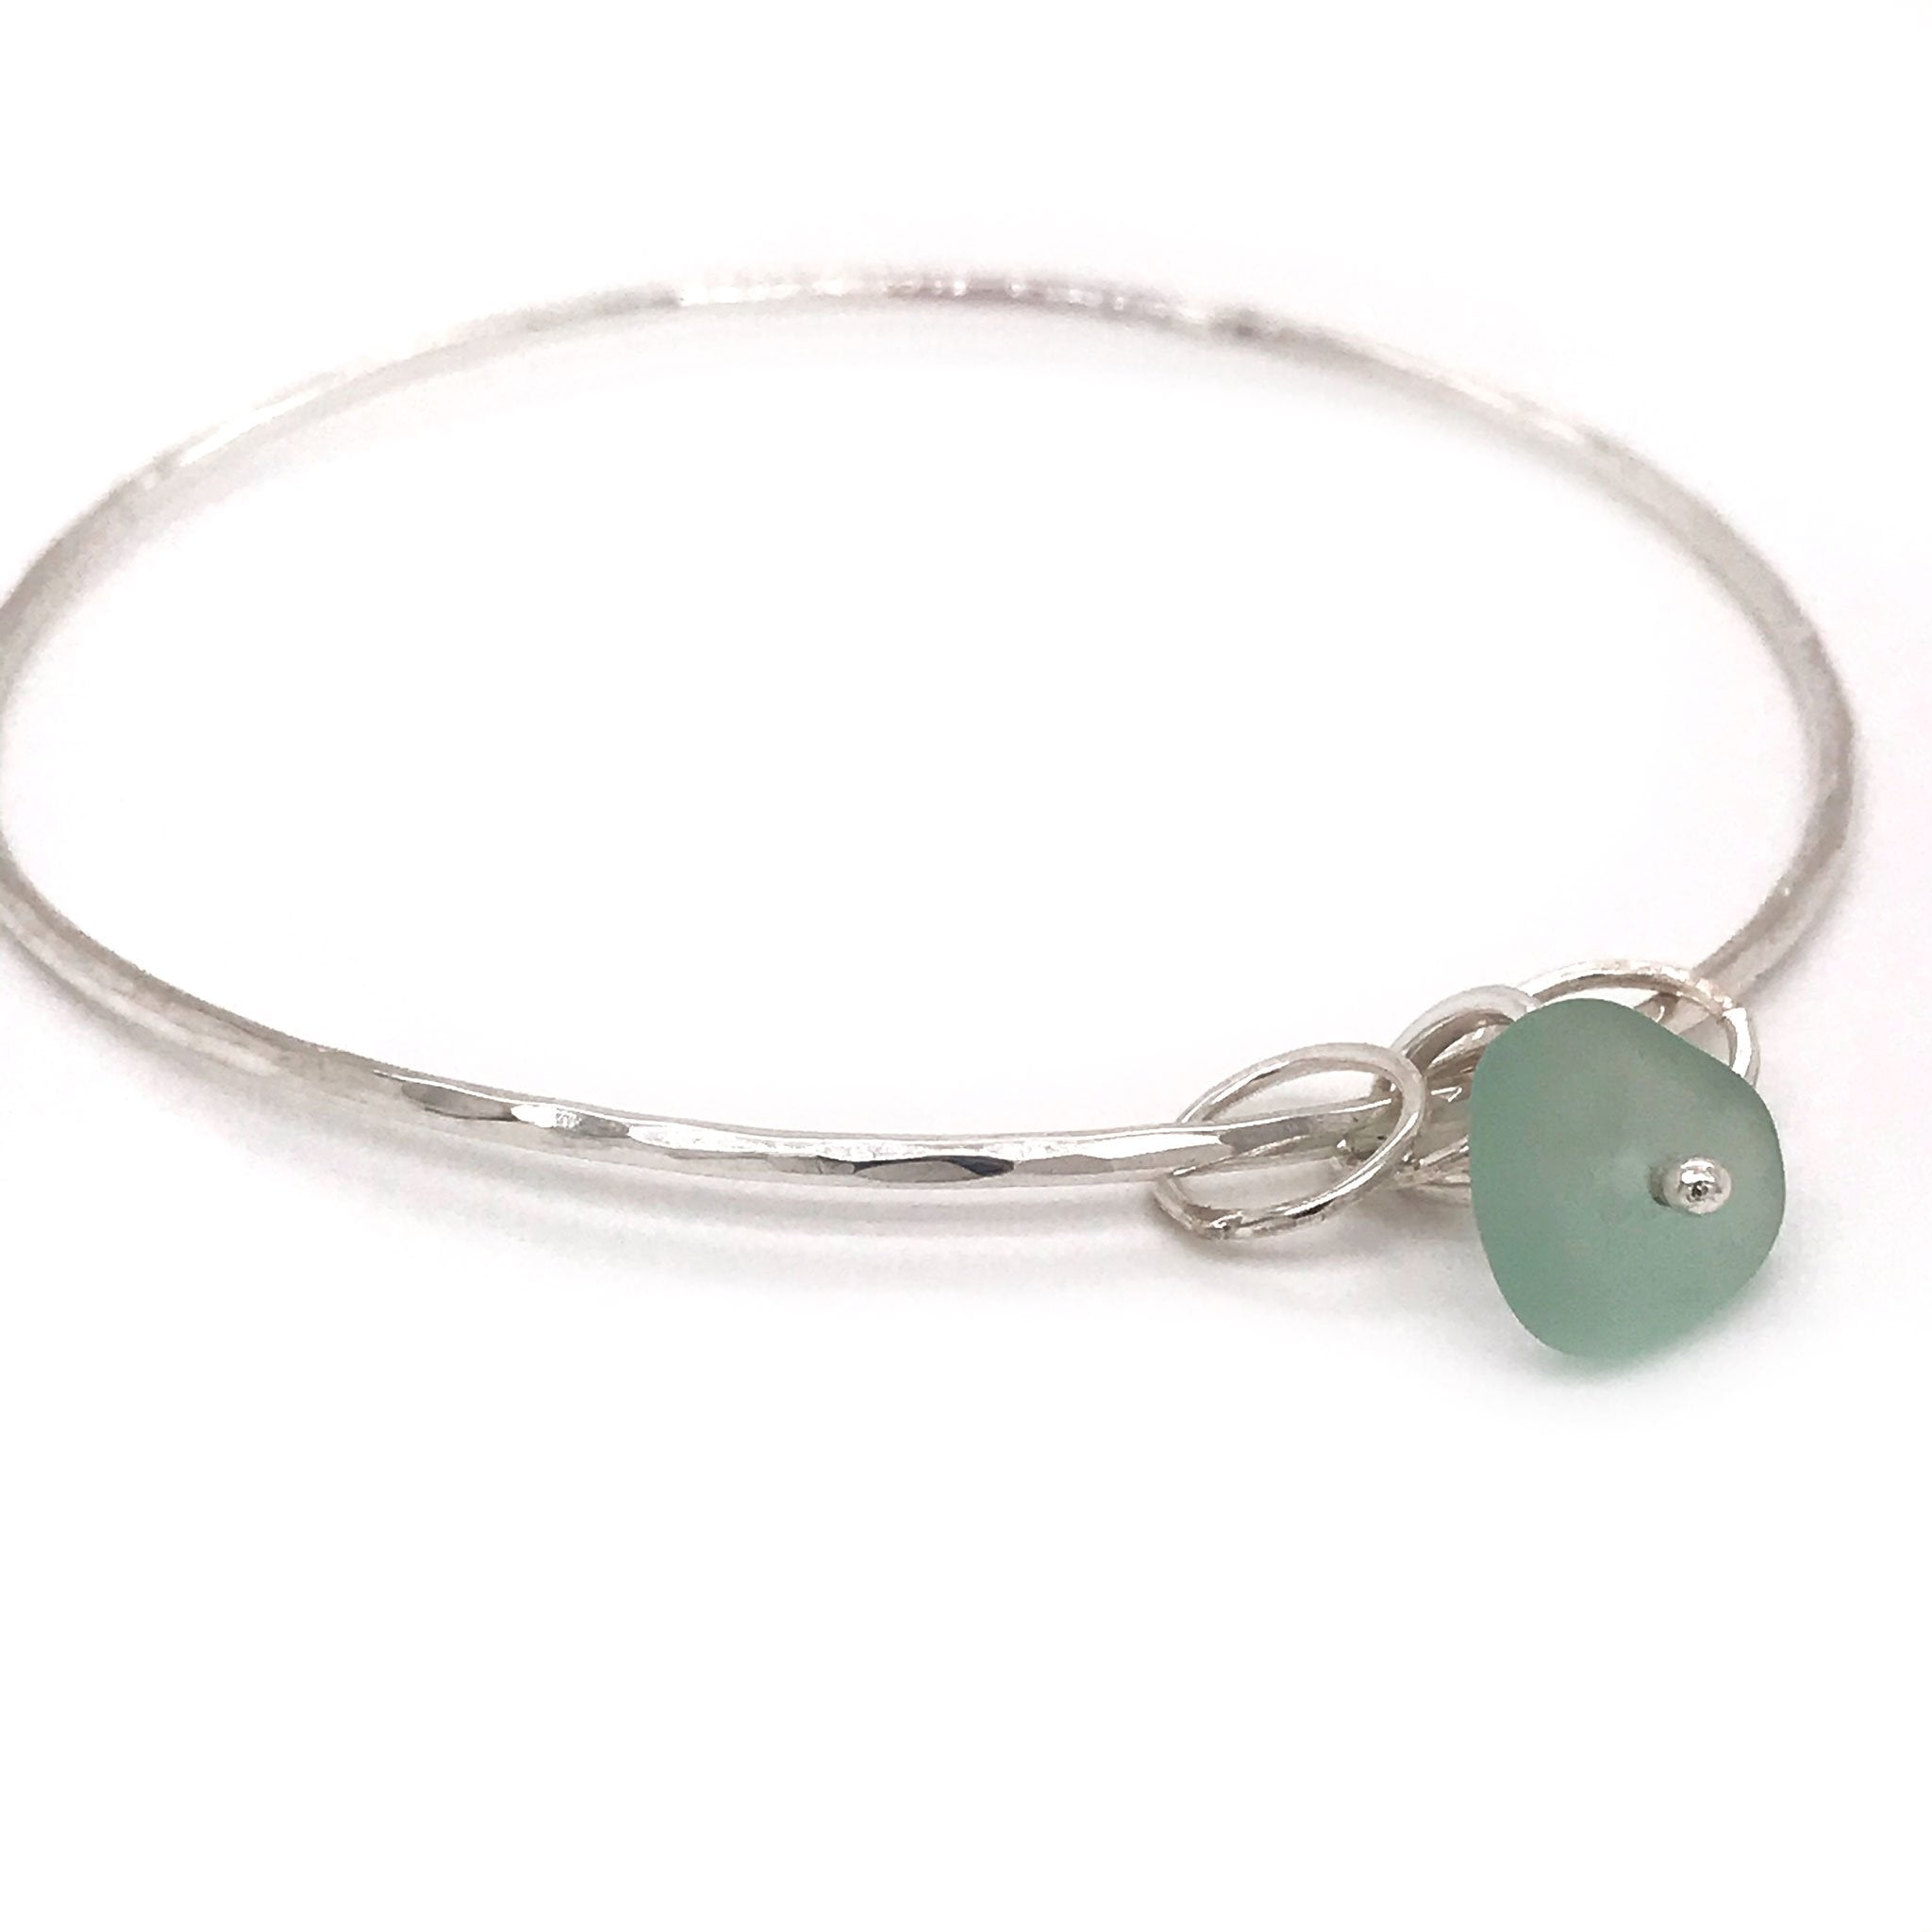 seafoam seaglass bangle silver kriket broadhurst jewellery